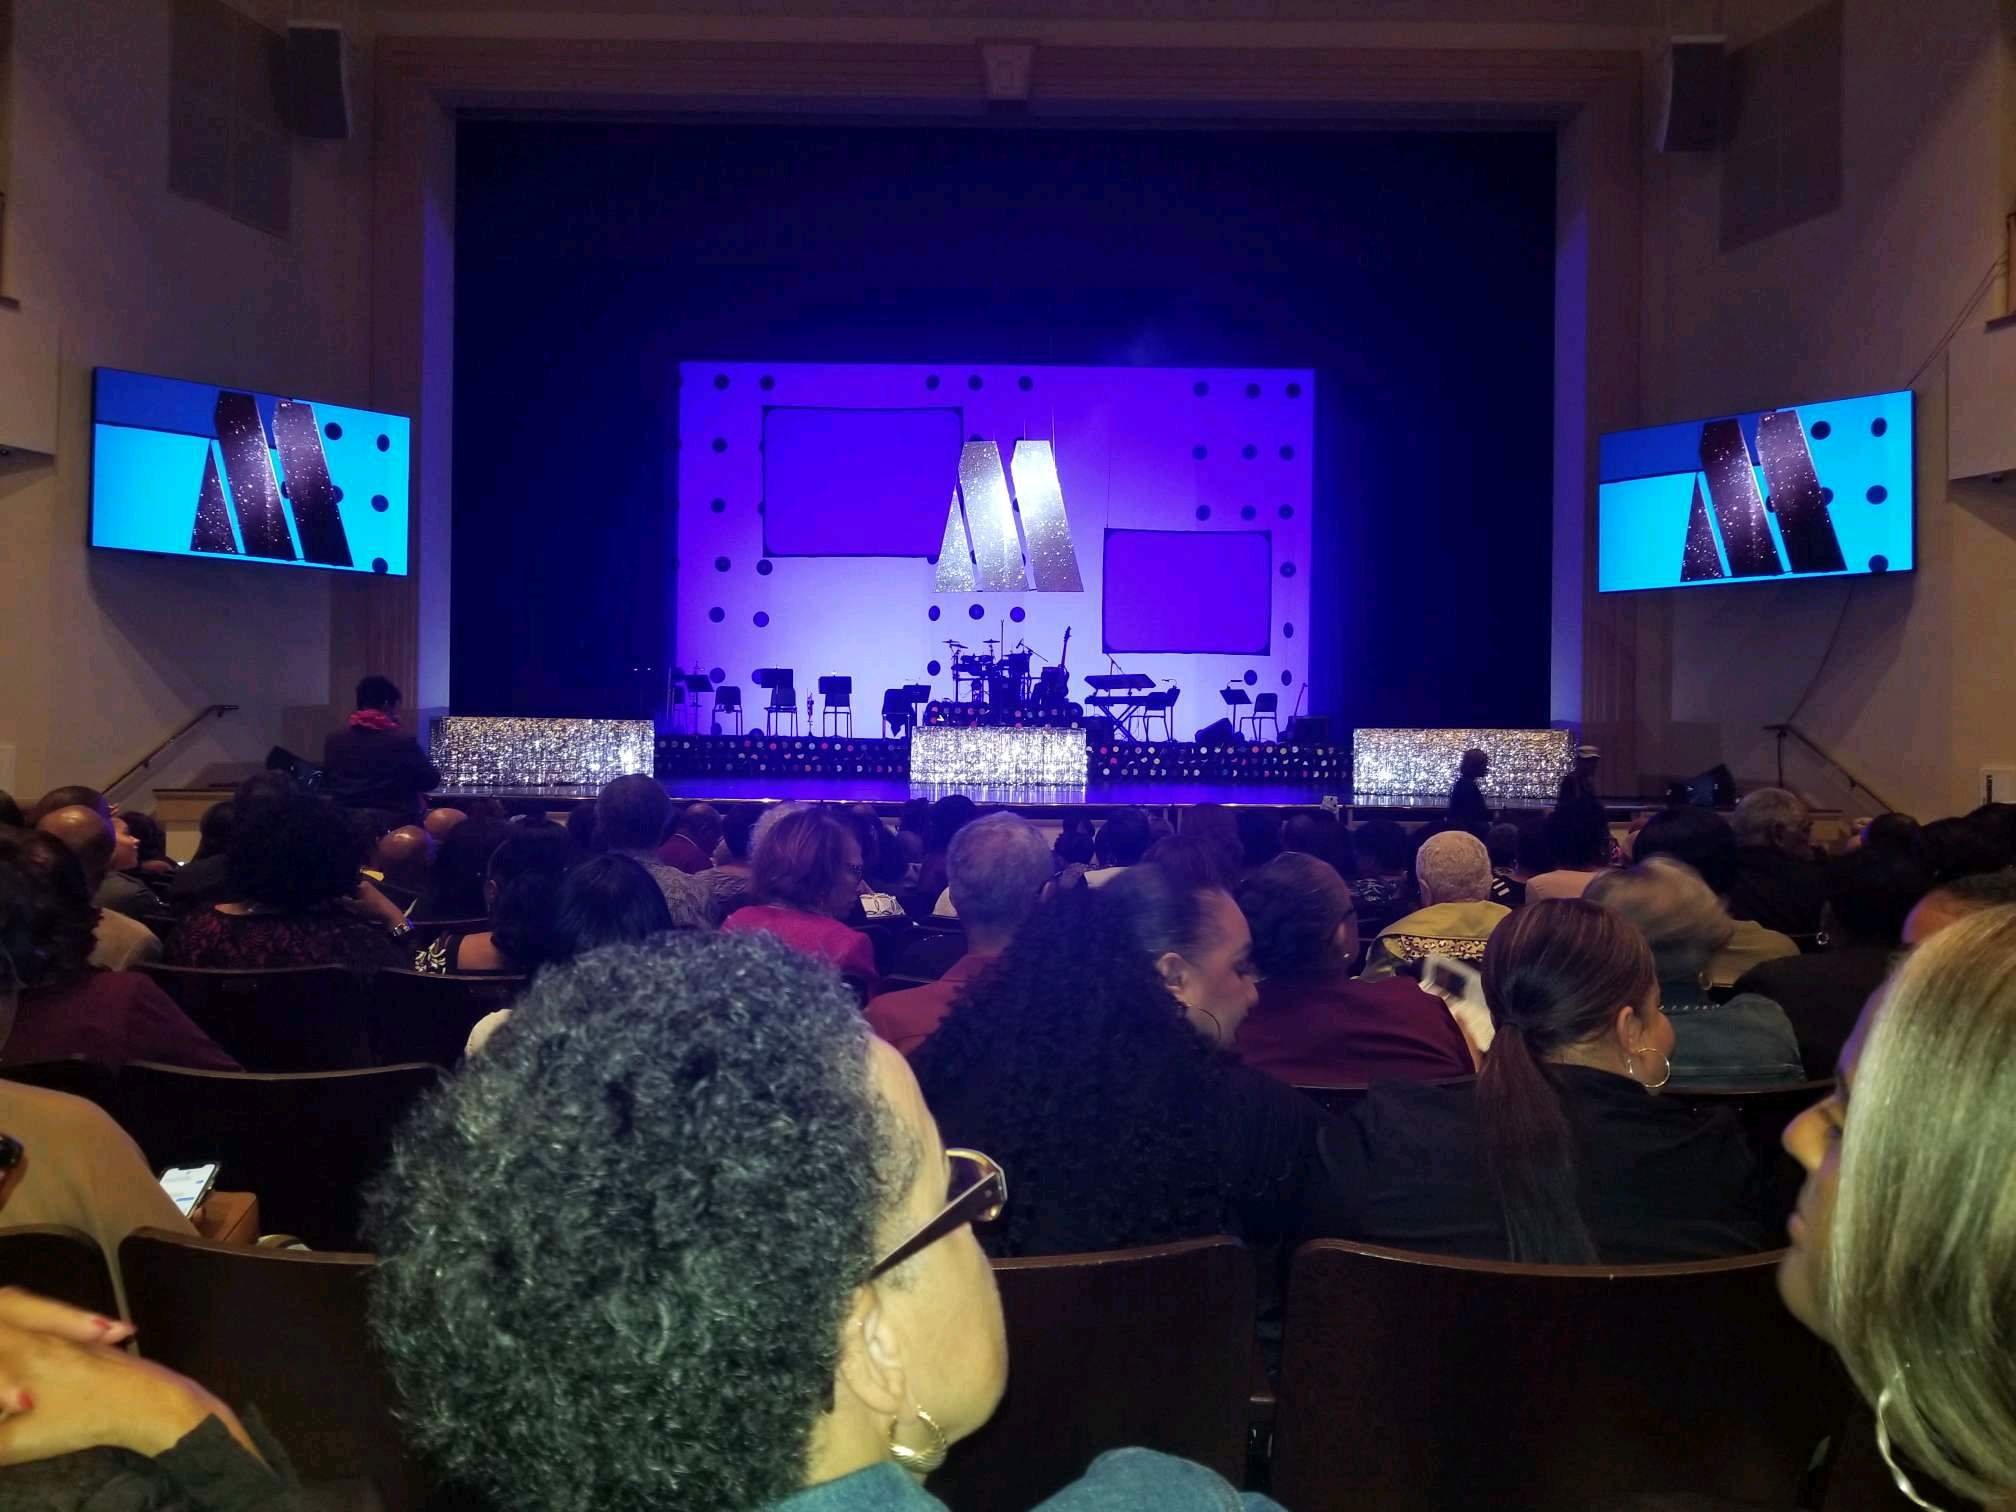 L. Douglas Wilder Performing Arts Center Section ORCHC Row N Seat 110